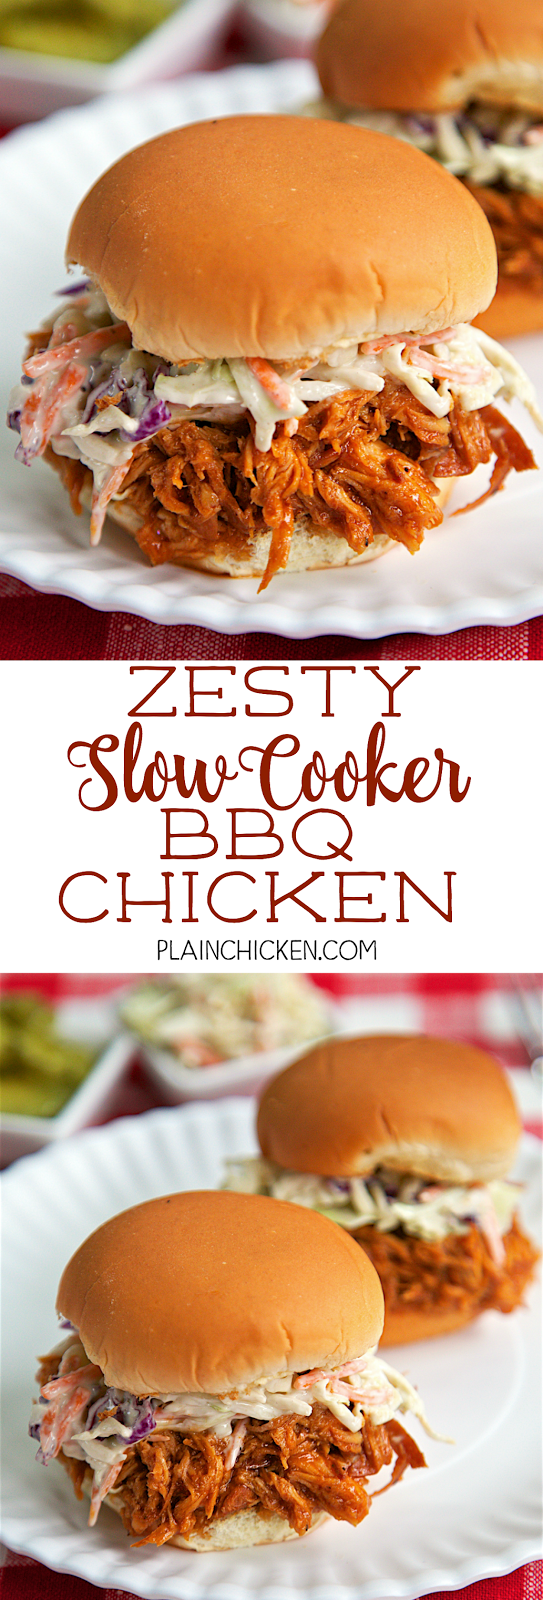 Zesty Slow Cooker BBQ Chicken - only 5 simple ingredients! You probably already have them in the house! Chicken, BBQ sauce, Italian dressing, brown sugar and Worcestershire sauce. I love all of these ingredients and they taste great combined into one easy dish! Feel free to use frozen chicken breasts in this dish. Make a ton, so it's great for a potluck! Serve chicken on buns, nachos, baked potato or on top of a salad. Everyone gobbled this up!